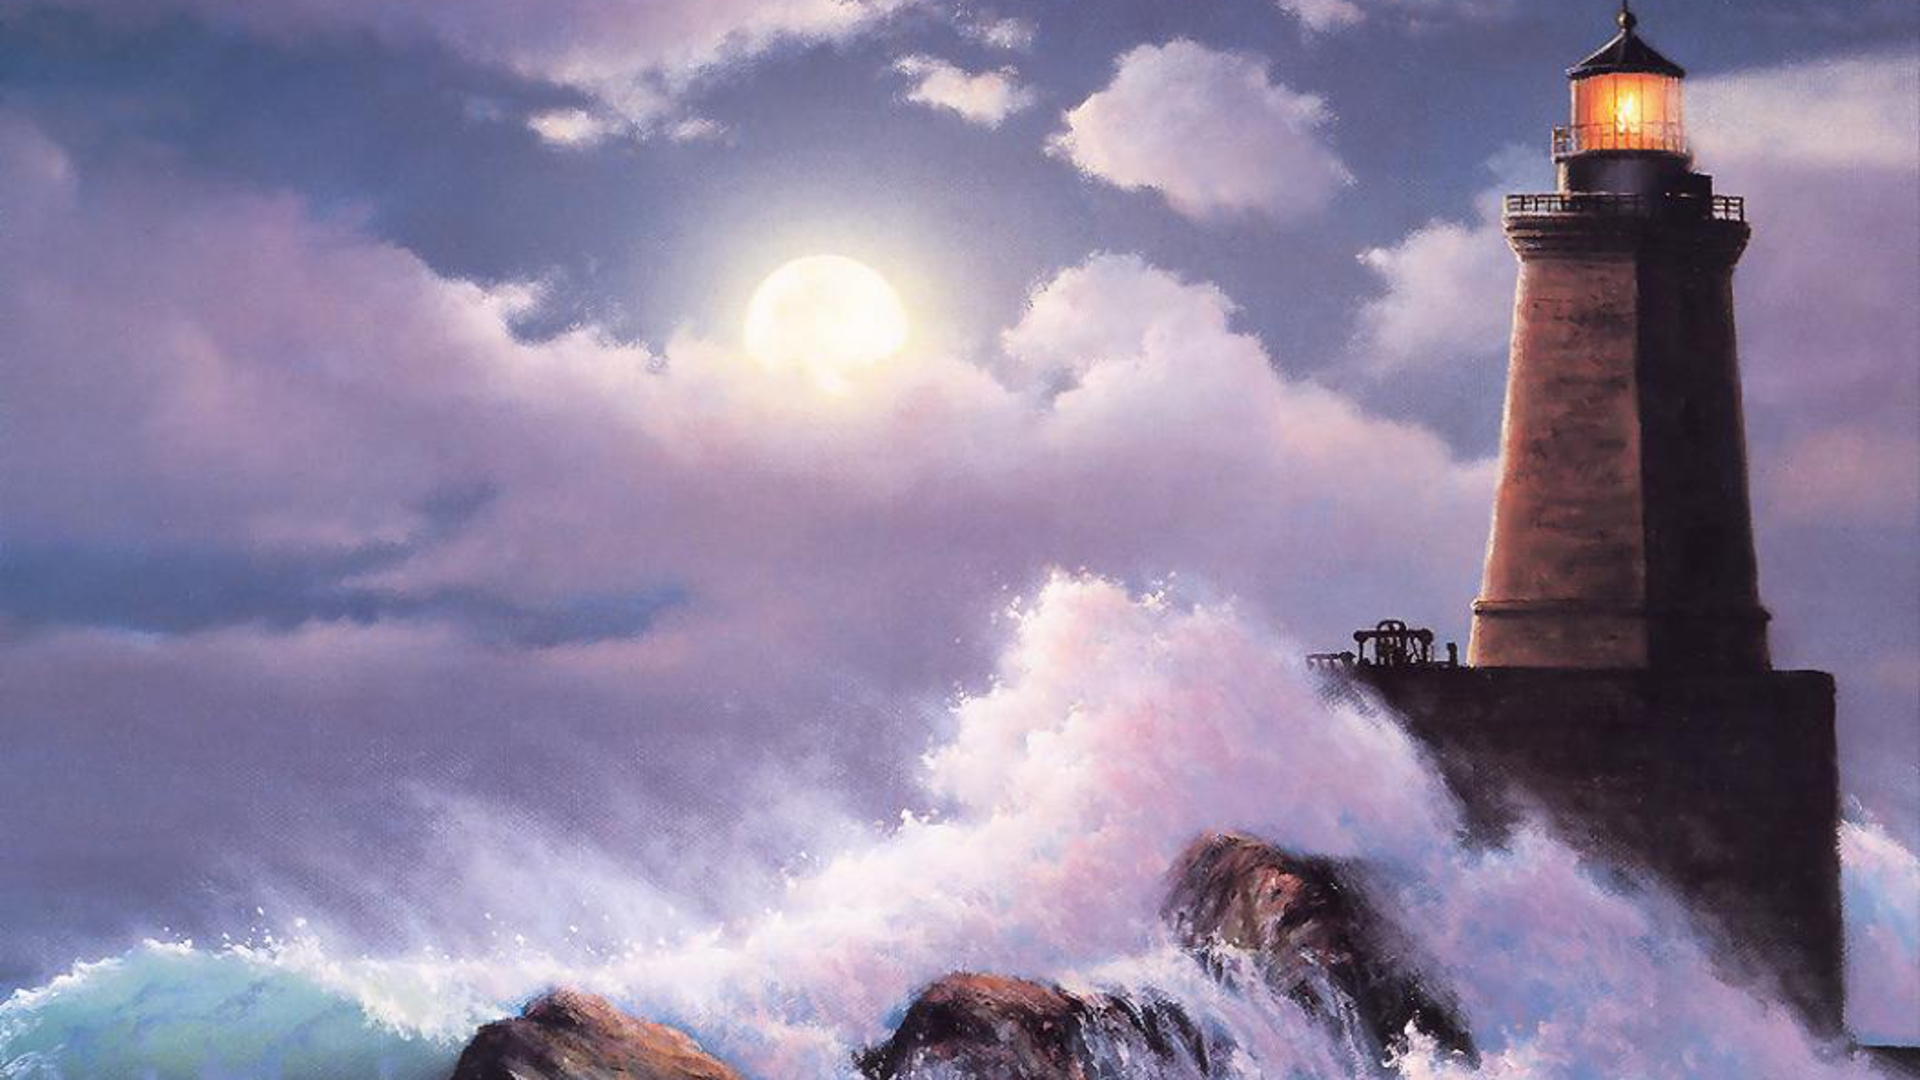 Lighthouse Hd Wallpapers: Desktop Wallpaper Lighthouse Storm